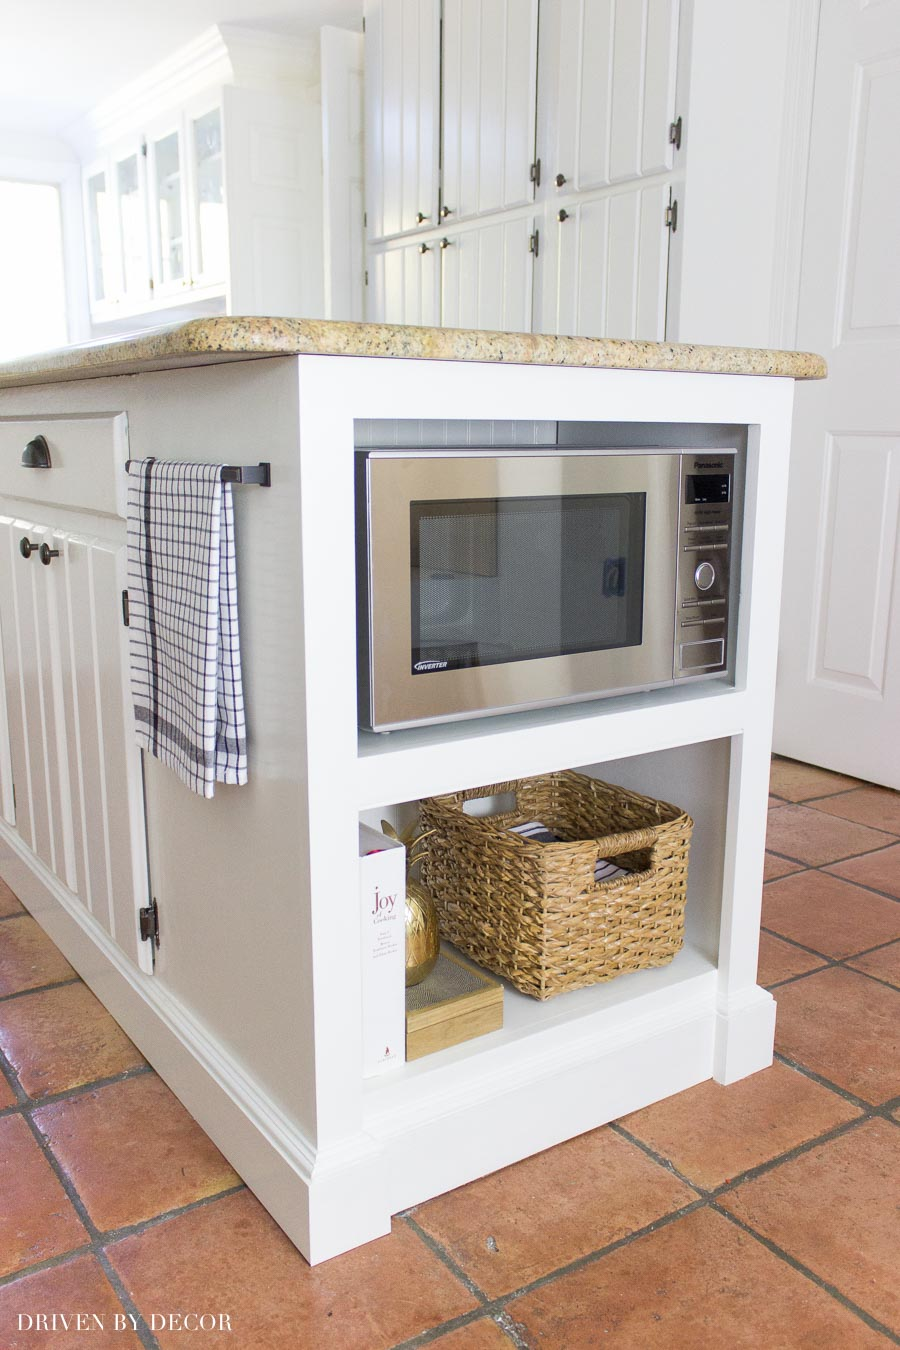 How to build a countertop microwave into your kitchen island!